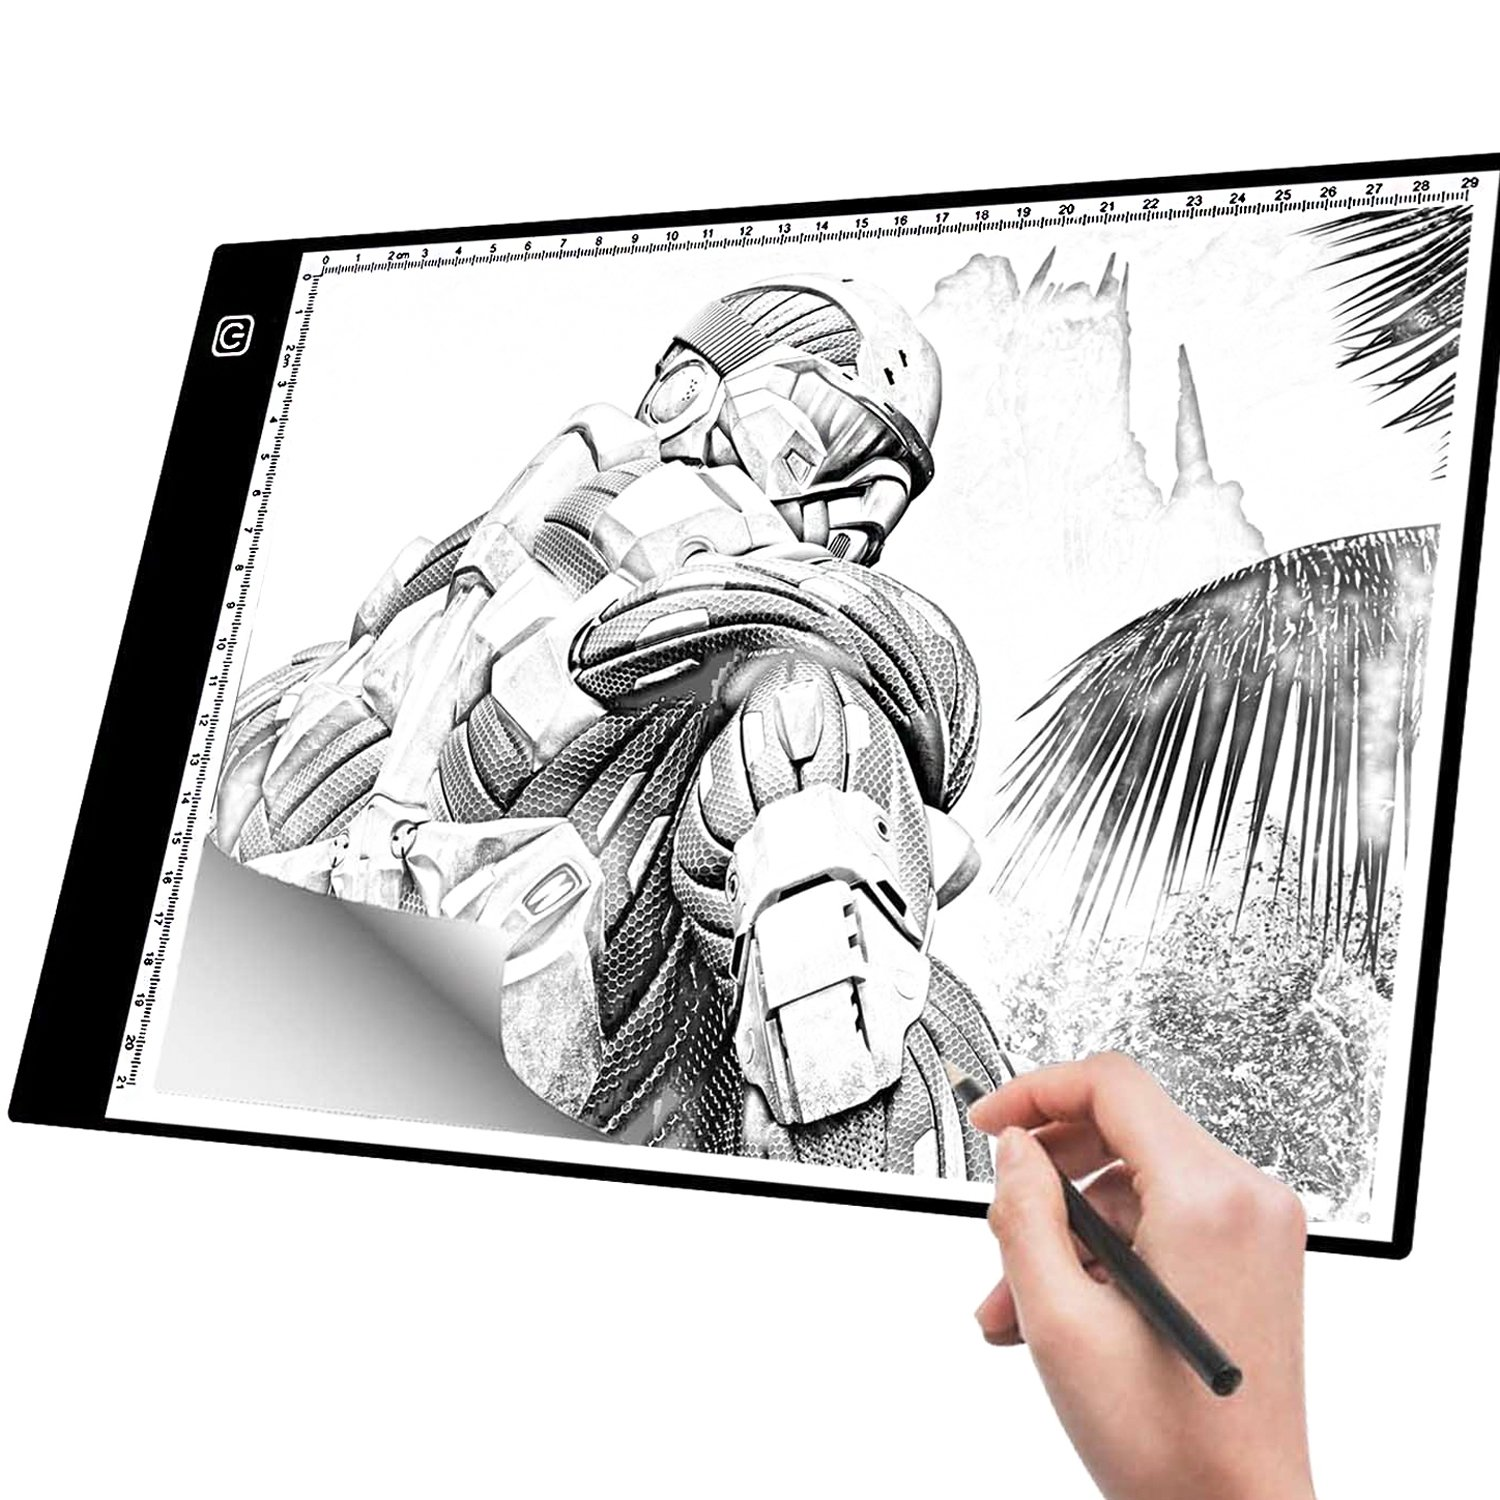 A4 Light Box Tracer with Scale | Ultra-Thin USB Powered Portable Dimmable Brightness LED Artcraft Tracing Light Pad | Light Box for Artists Drawing Sketching Animation 5D Diamond Painting